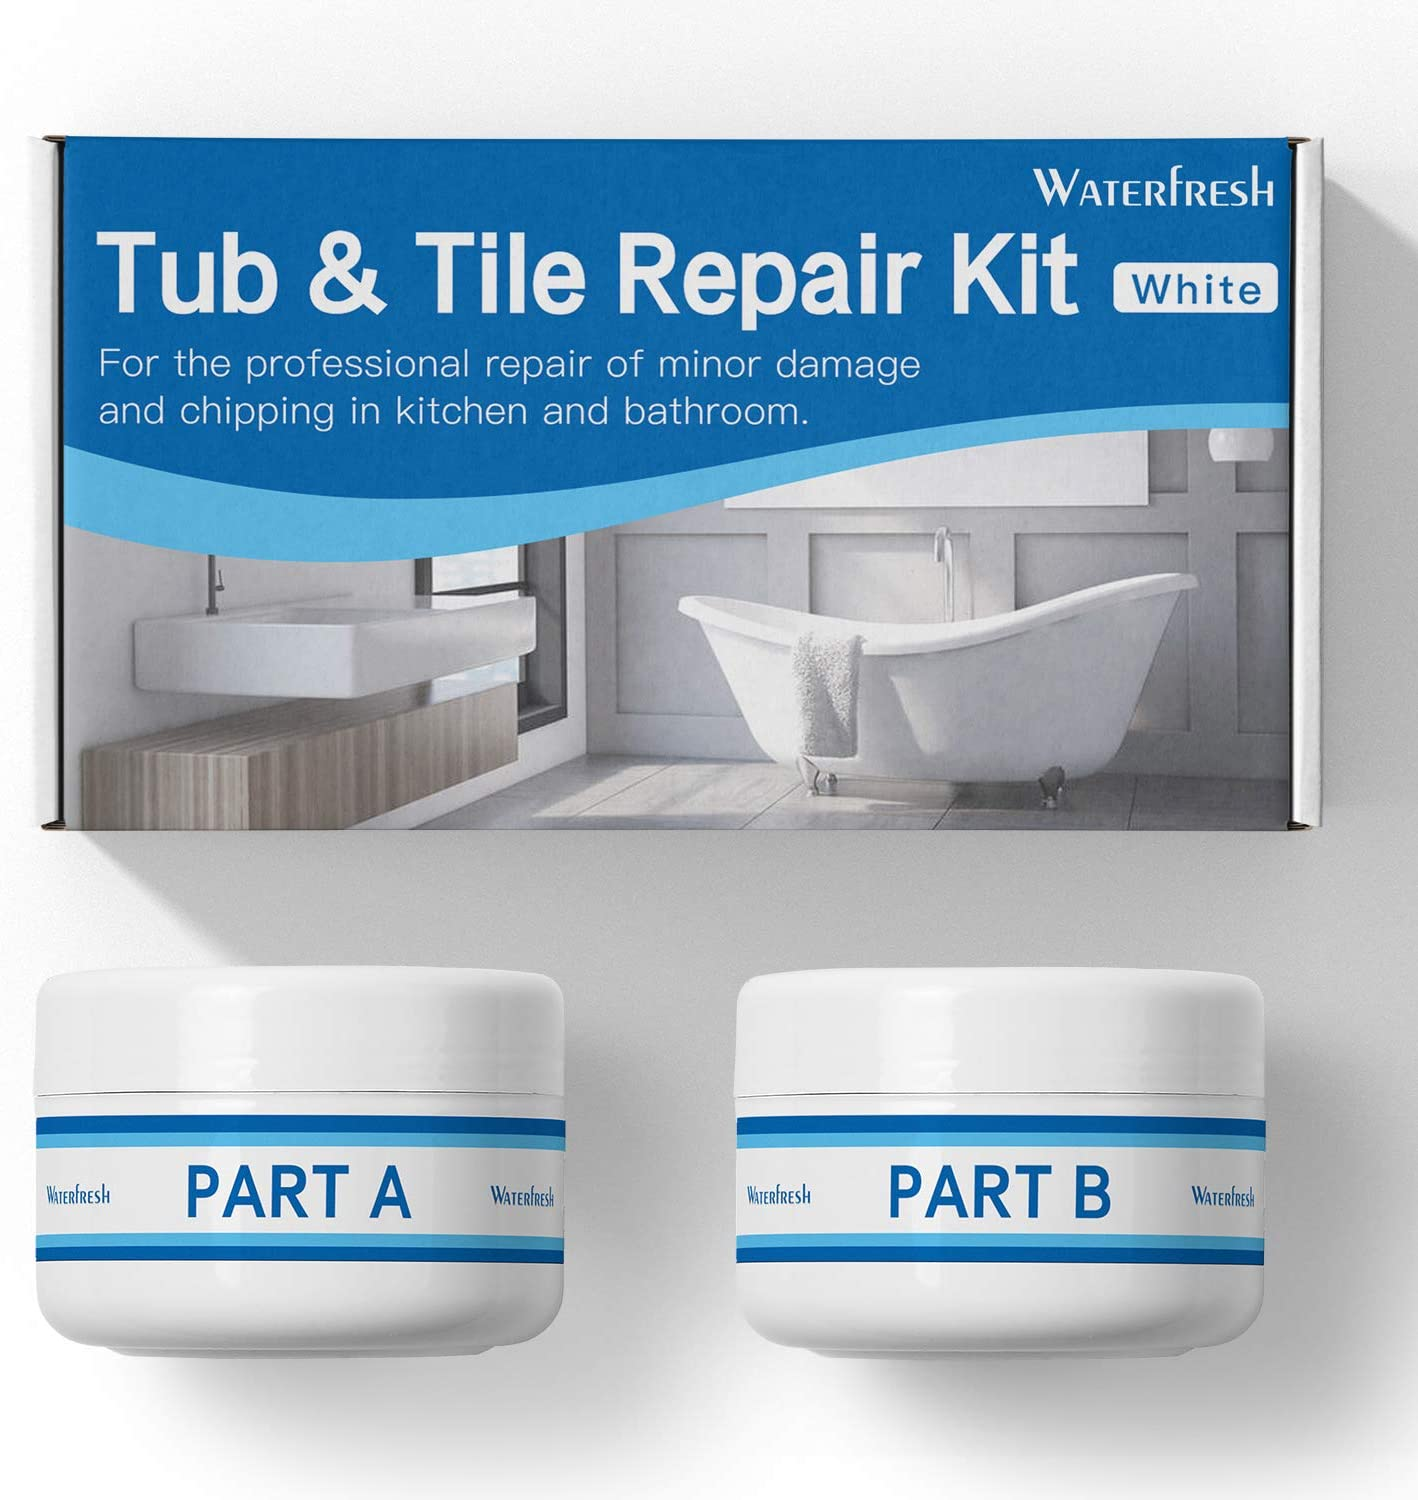 Tub, Tile and Shower Repair Kit - White  Fiberglass and Porcelain Repair   Shower & Countertop - Bathtub Refinishing Kit